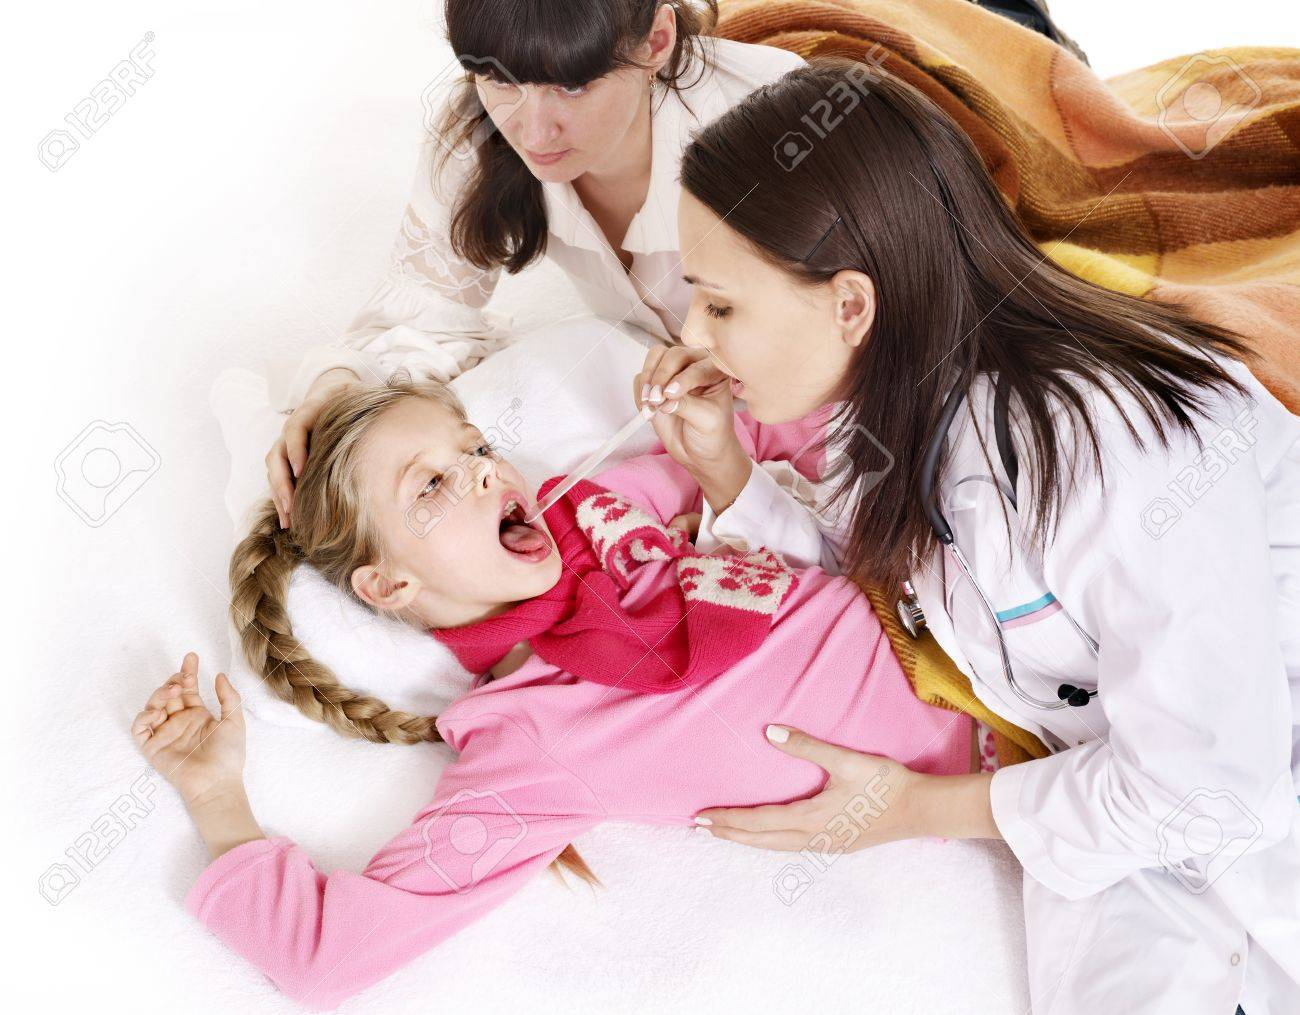 Doctor examining child with sore throat. Isolated. Stock Photo - 9899441